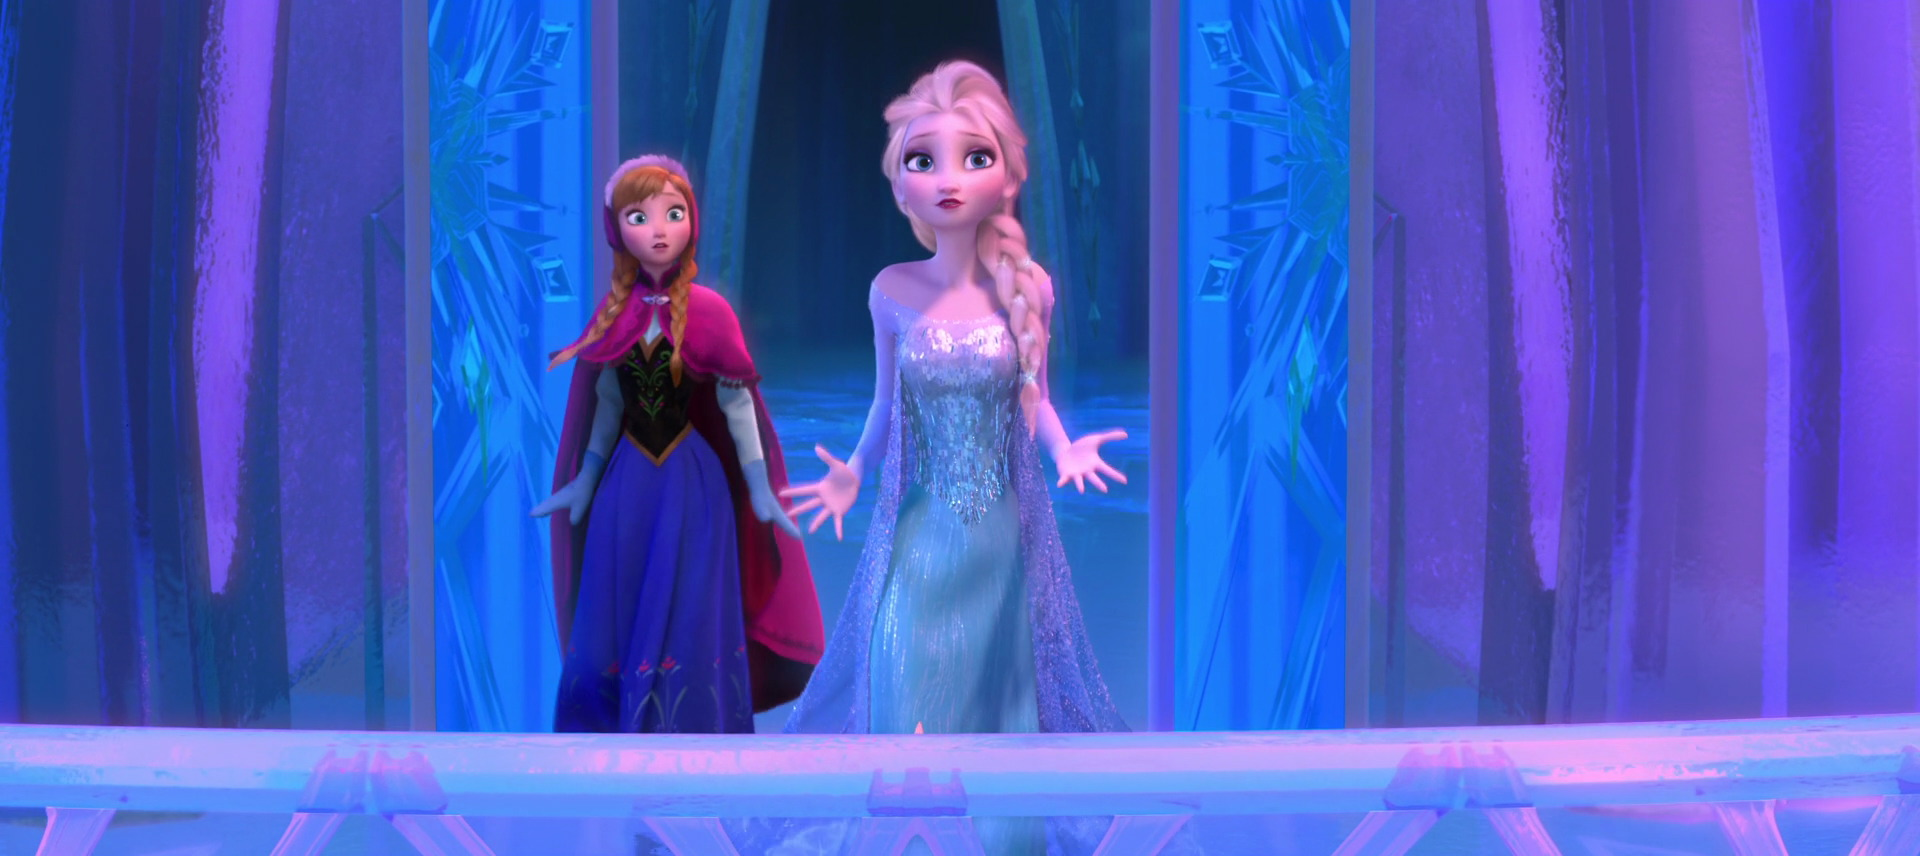 Frozen's Anna and Elsa are the most dominate toy property of 2014.